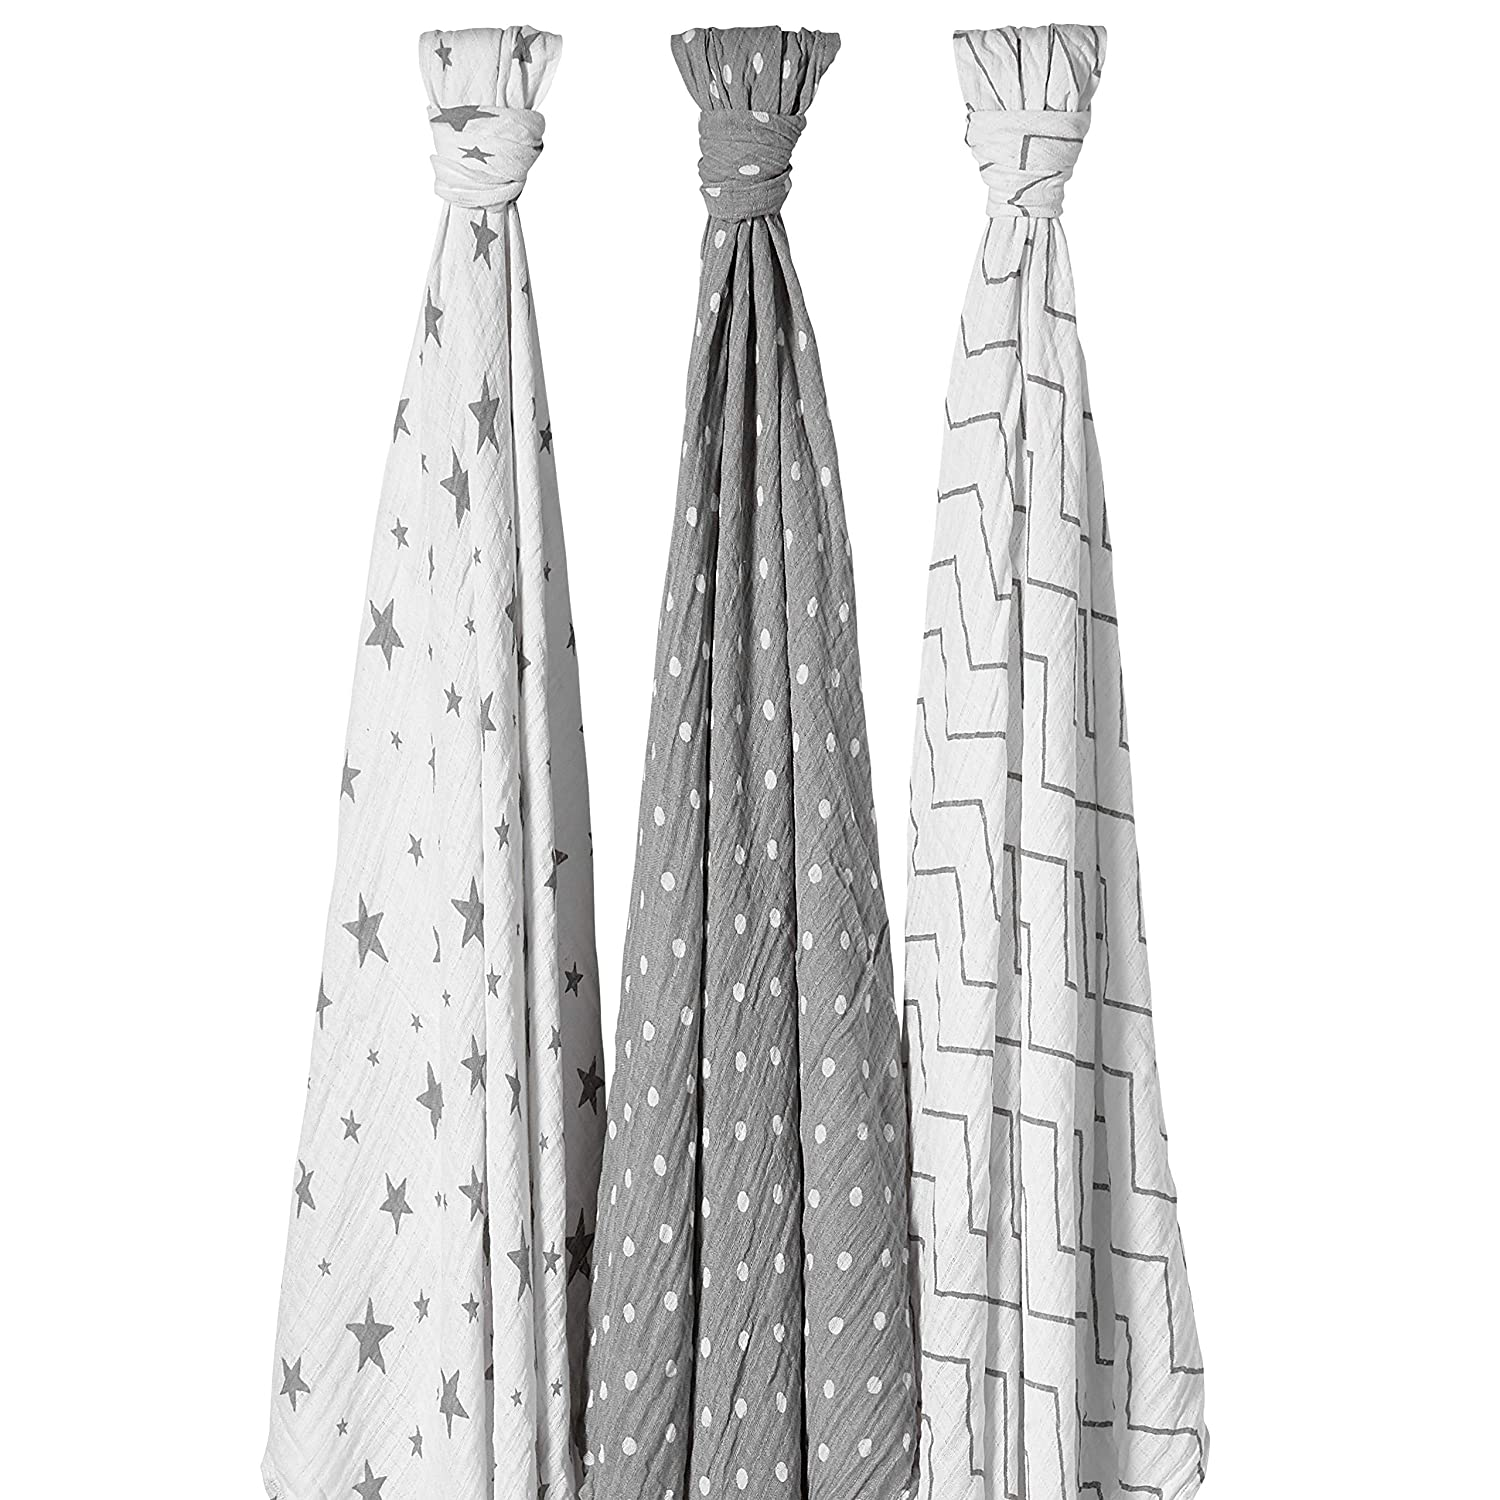 Bloomsbury Mill - Pack of 3 x Muslin Swaddles - 120cm x 120cm - Stars, Chevrons & Polka Dots - Grey & White